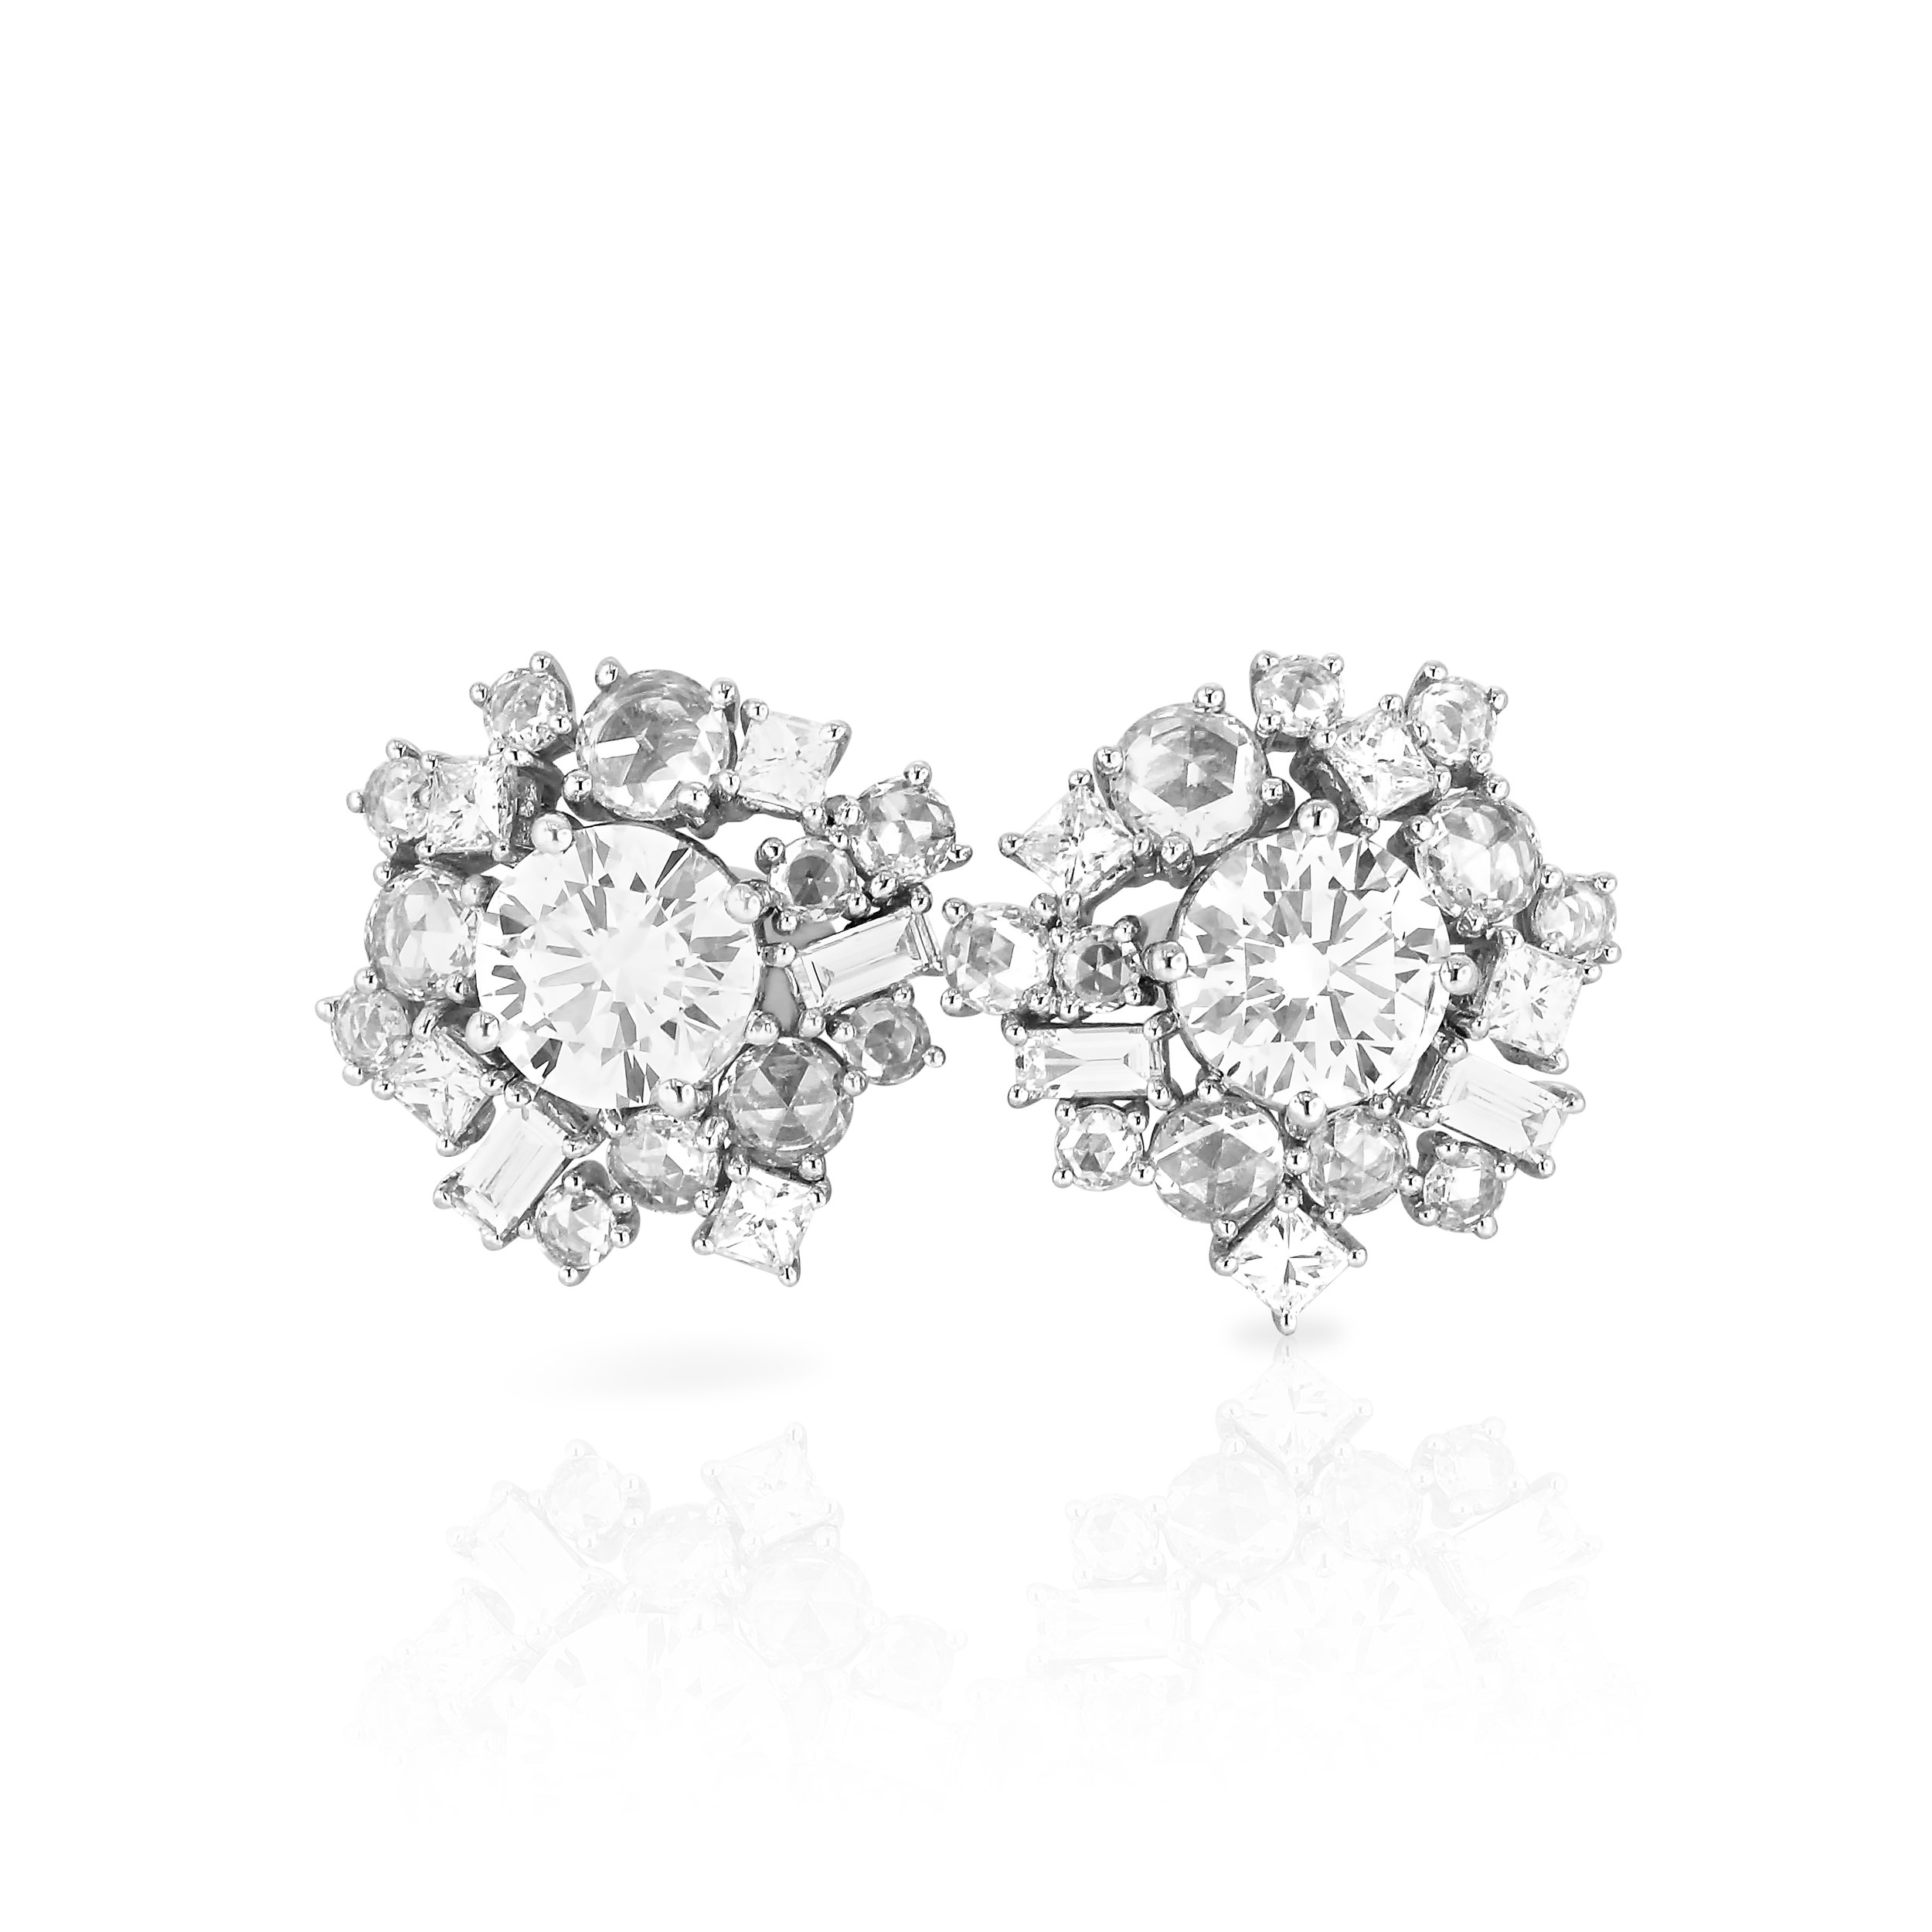 Diamond Cluster Earrings.jpg